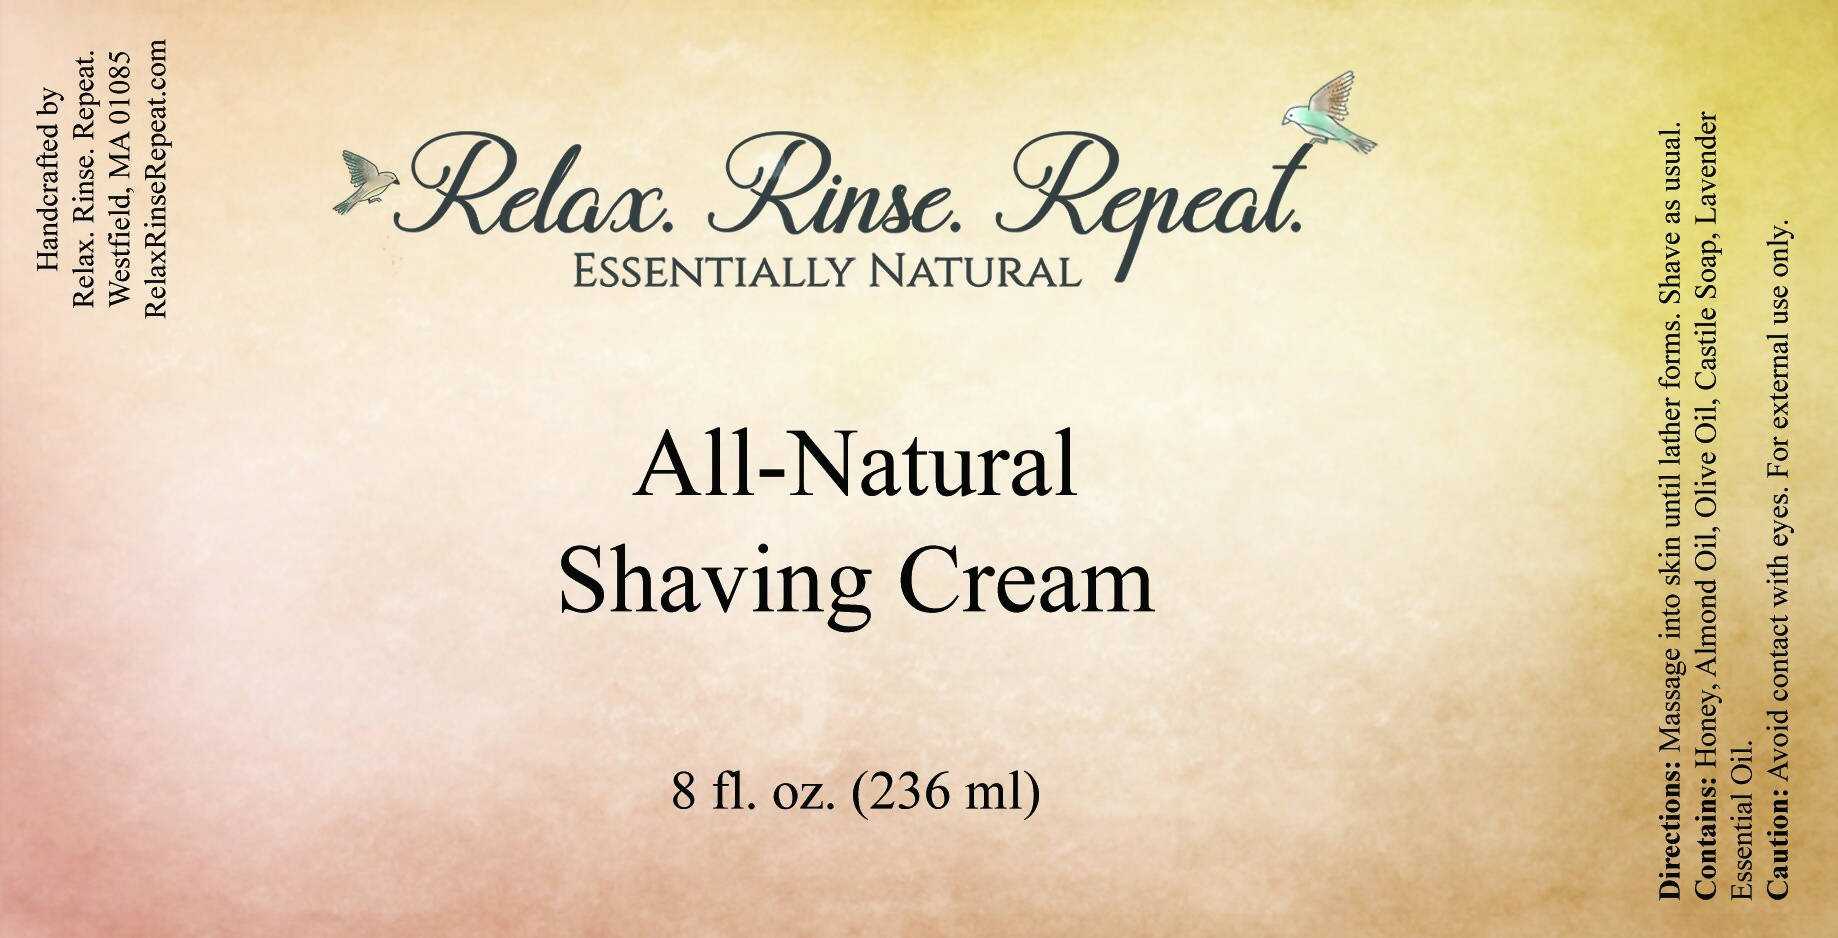 All-Natural Shaving Cream